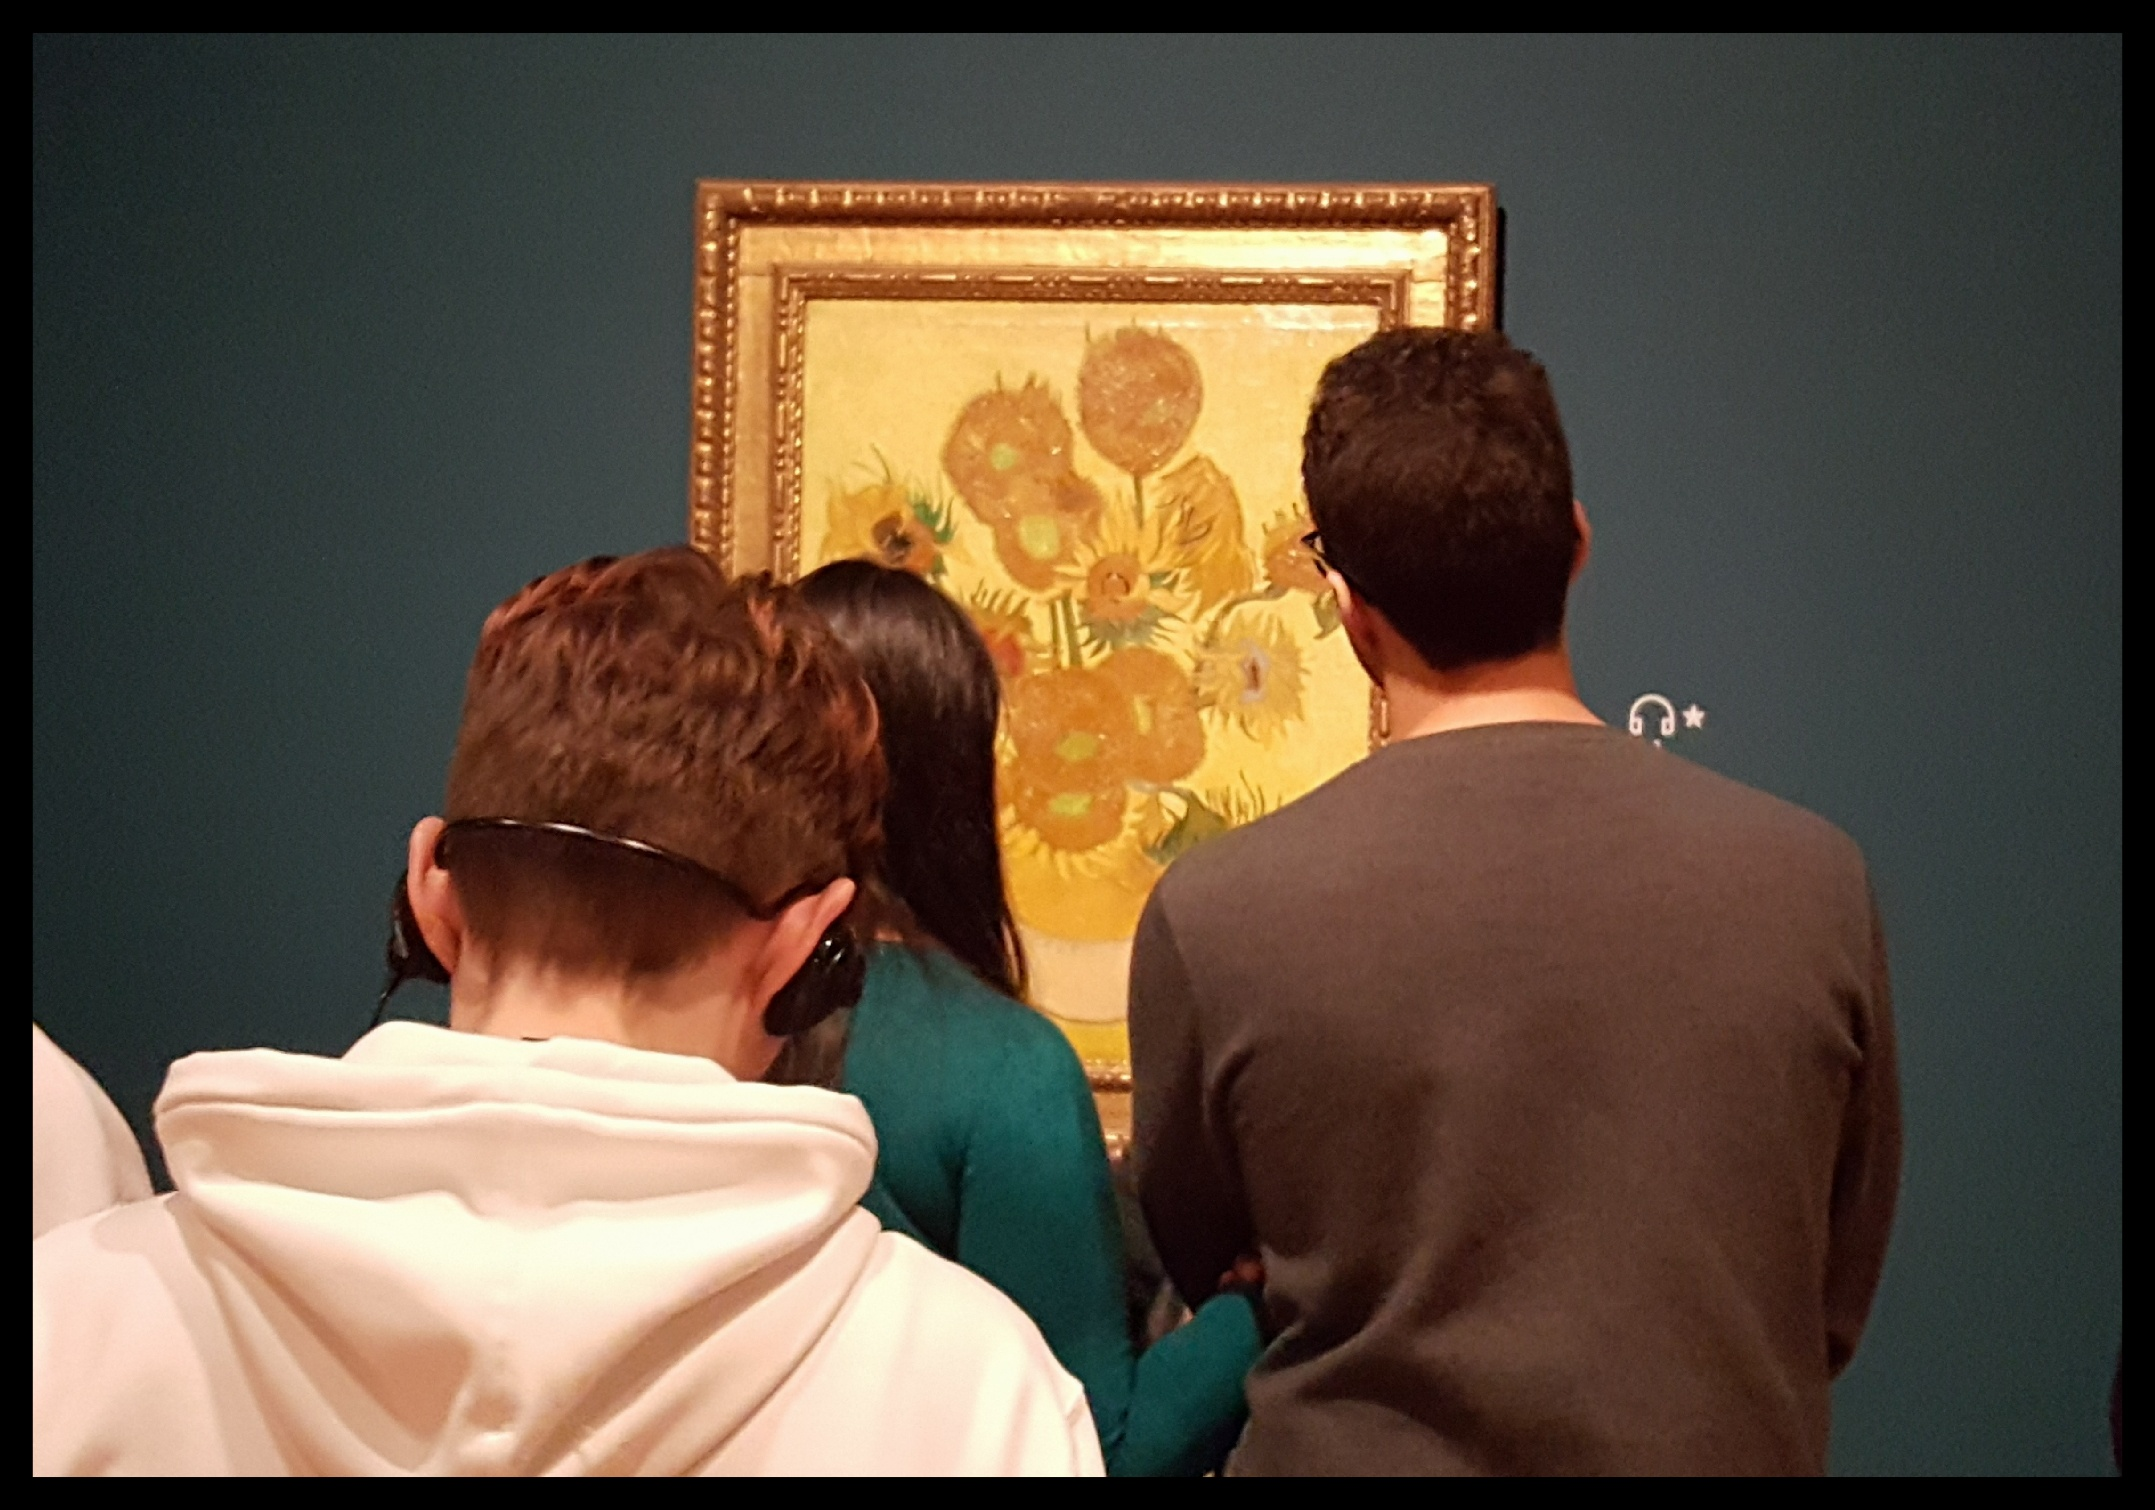 Peeking over the crowds at the Van Gogh Museum.